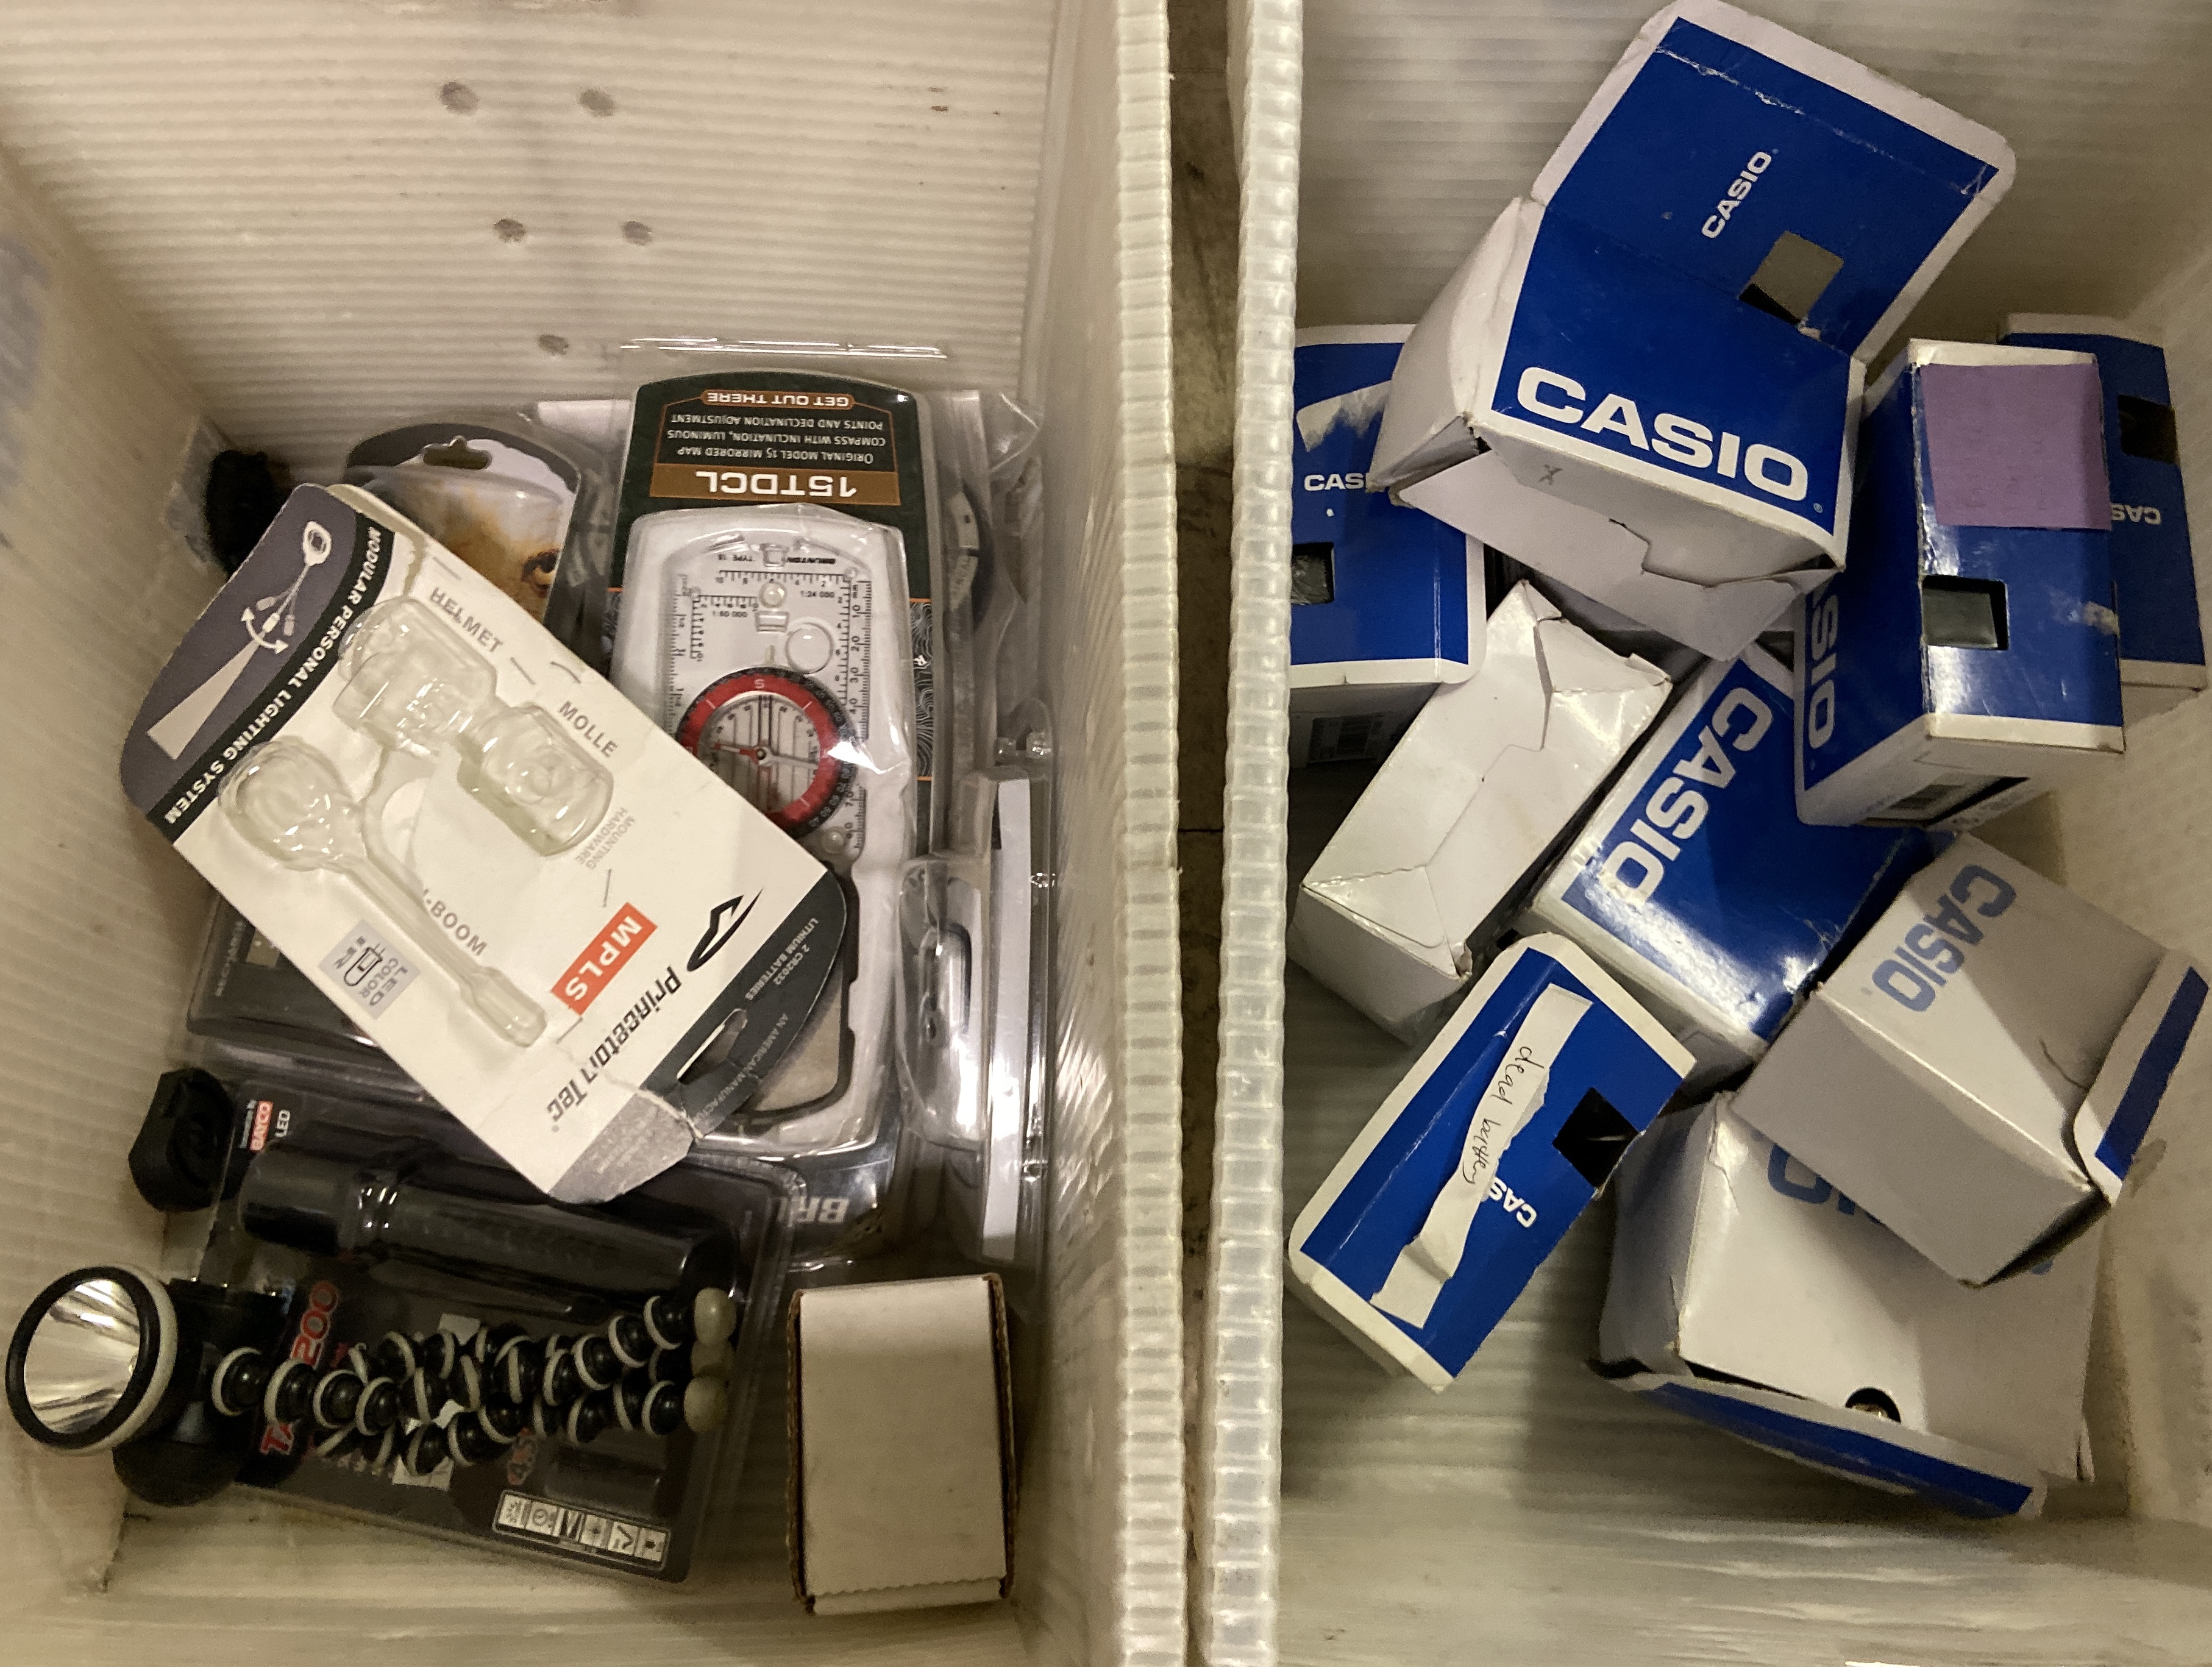 Mixed lot of Casio digital watches, tactical gear, etc. 50+ retail pieces - Image 2 of 3